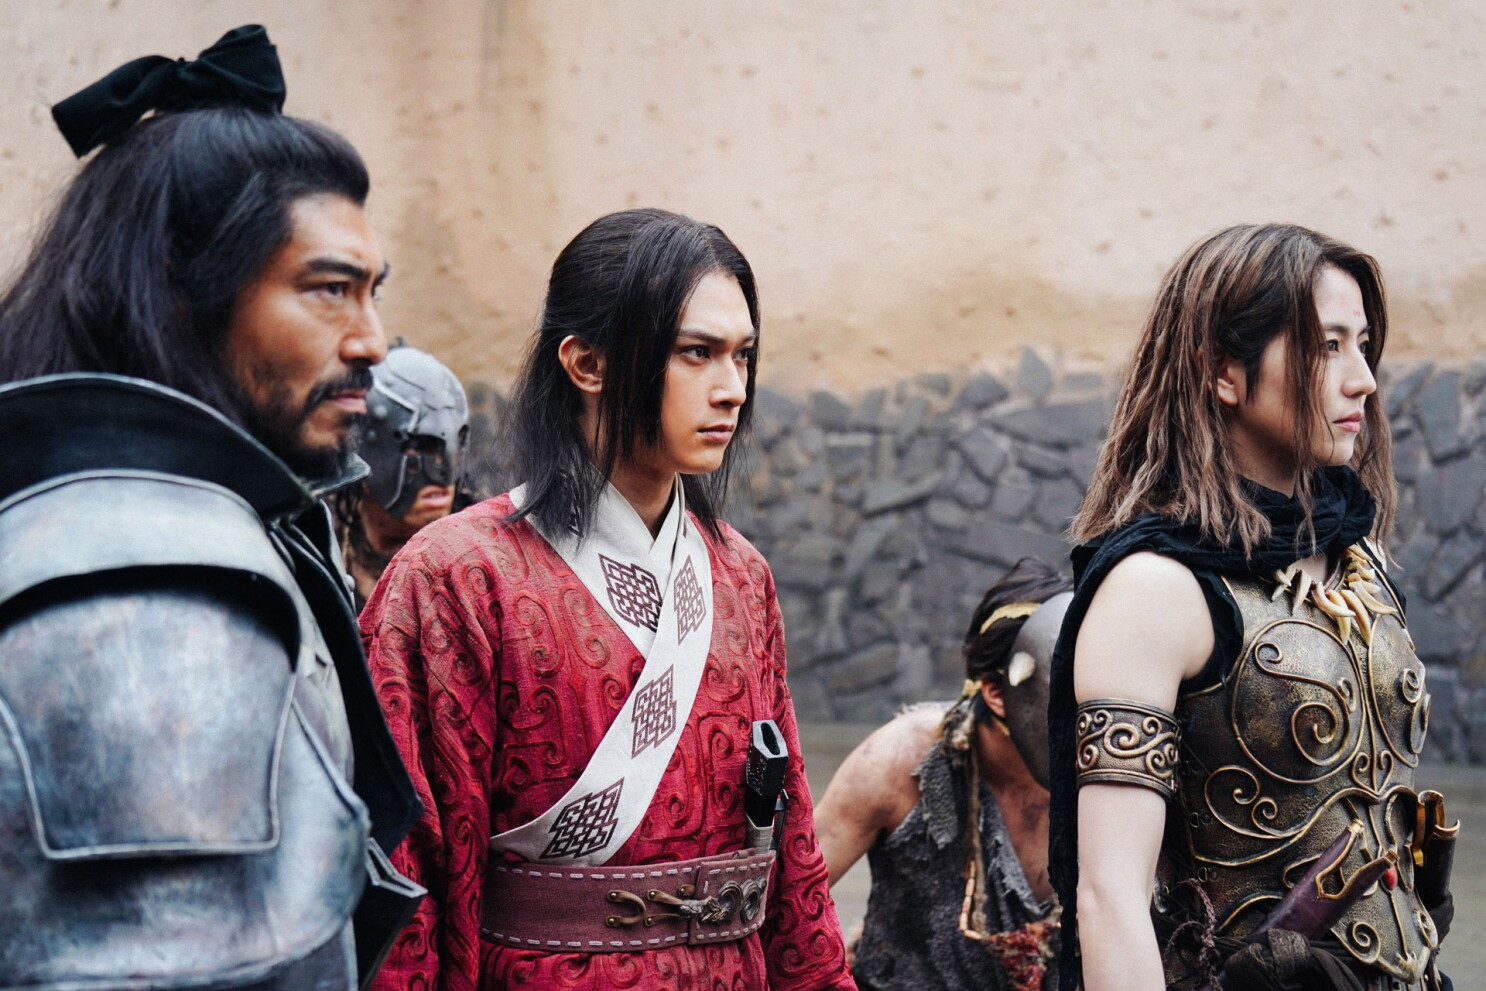 Review: 'Kingdom's' sword-wielding manga heroes a thrill